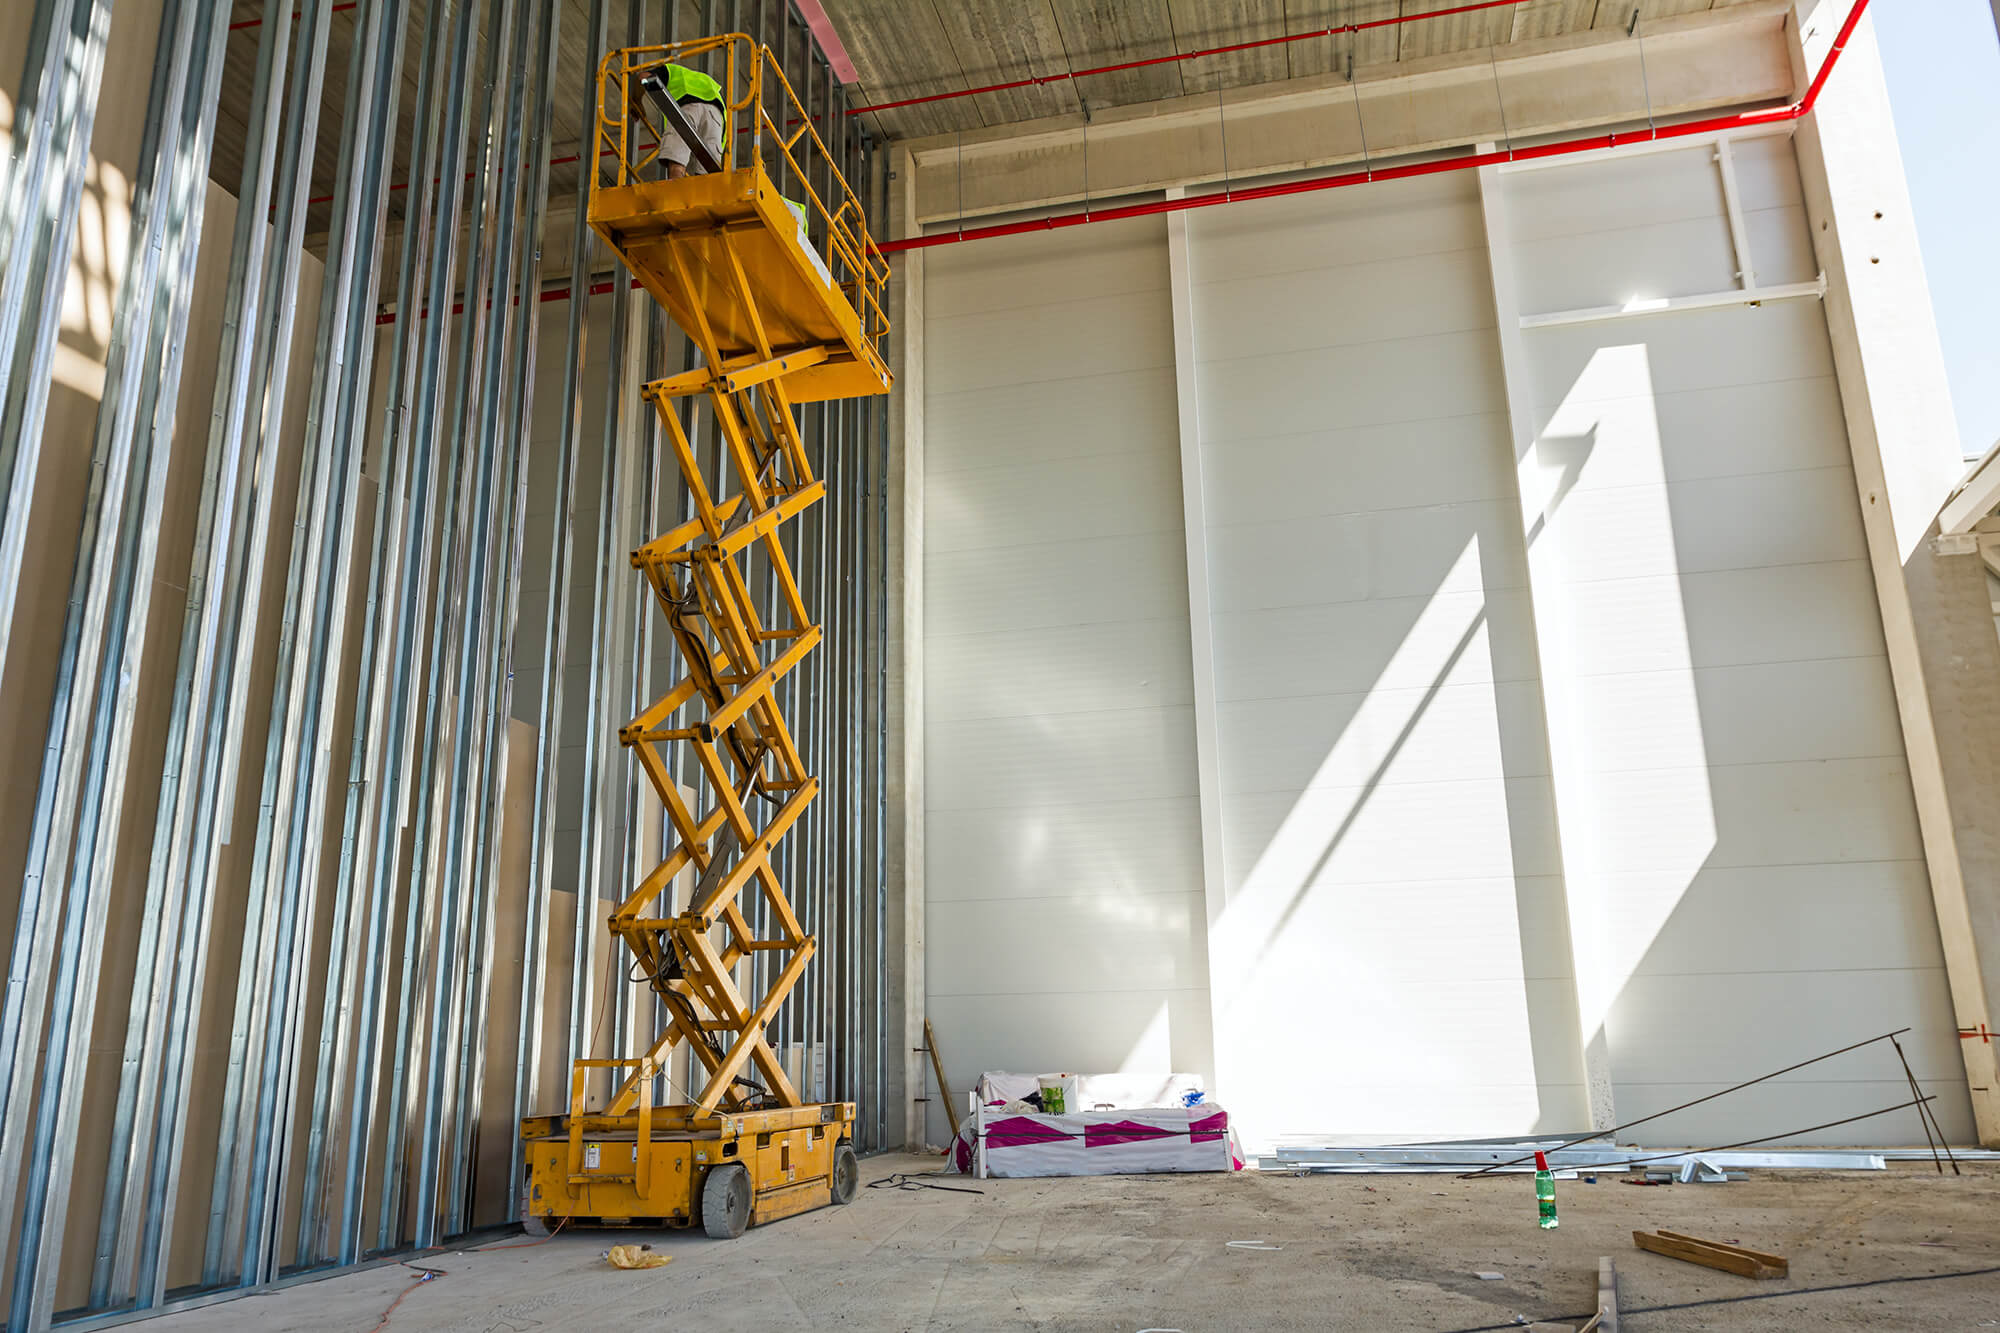 Fall prevention: safety standards for working at heights